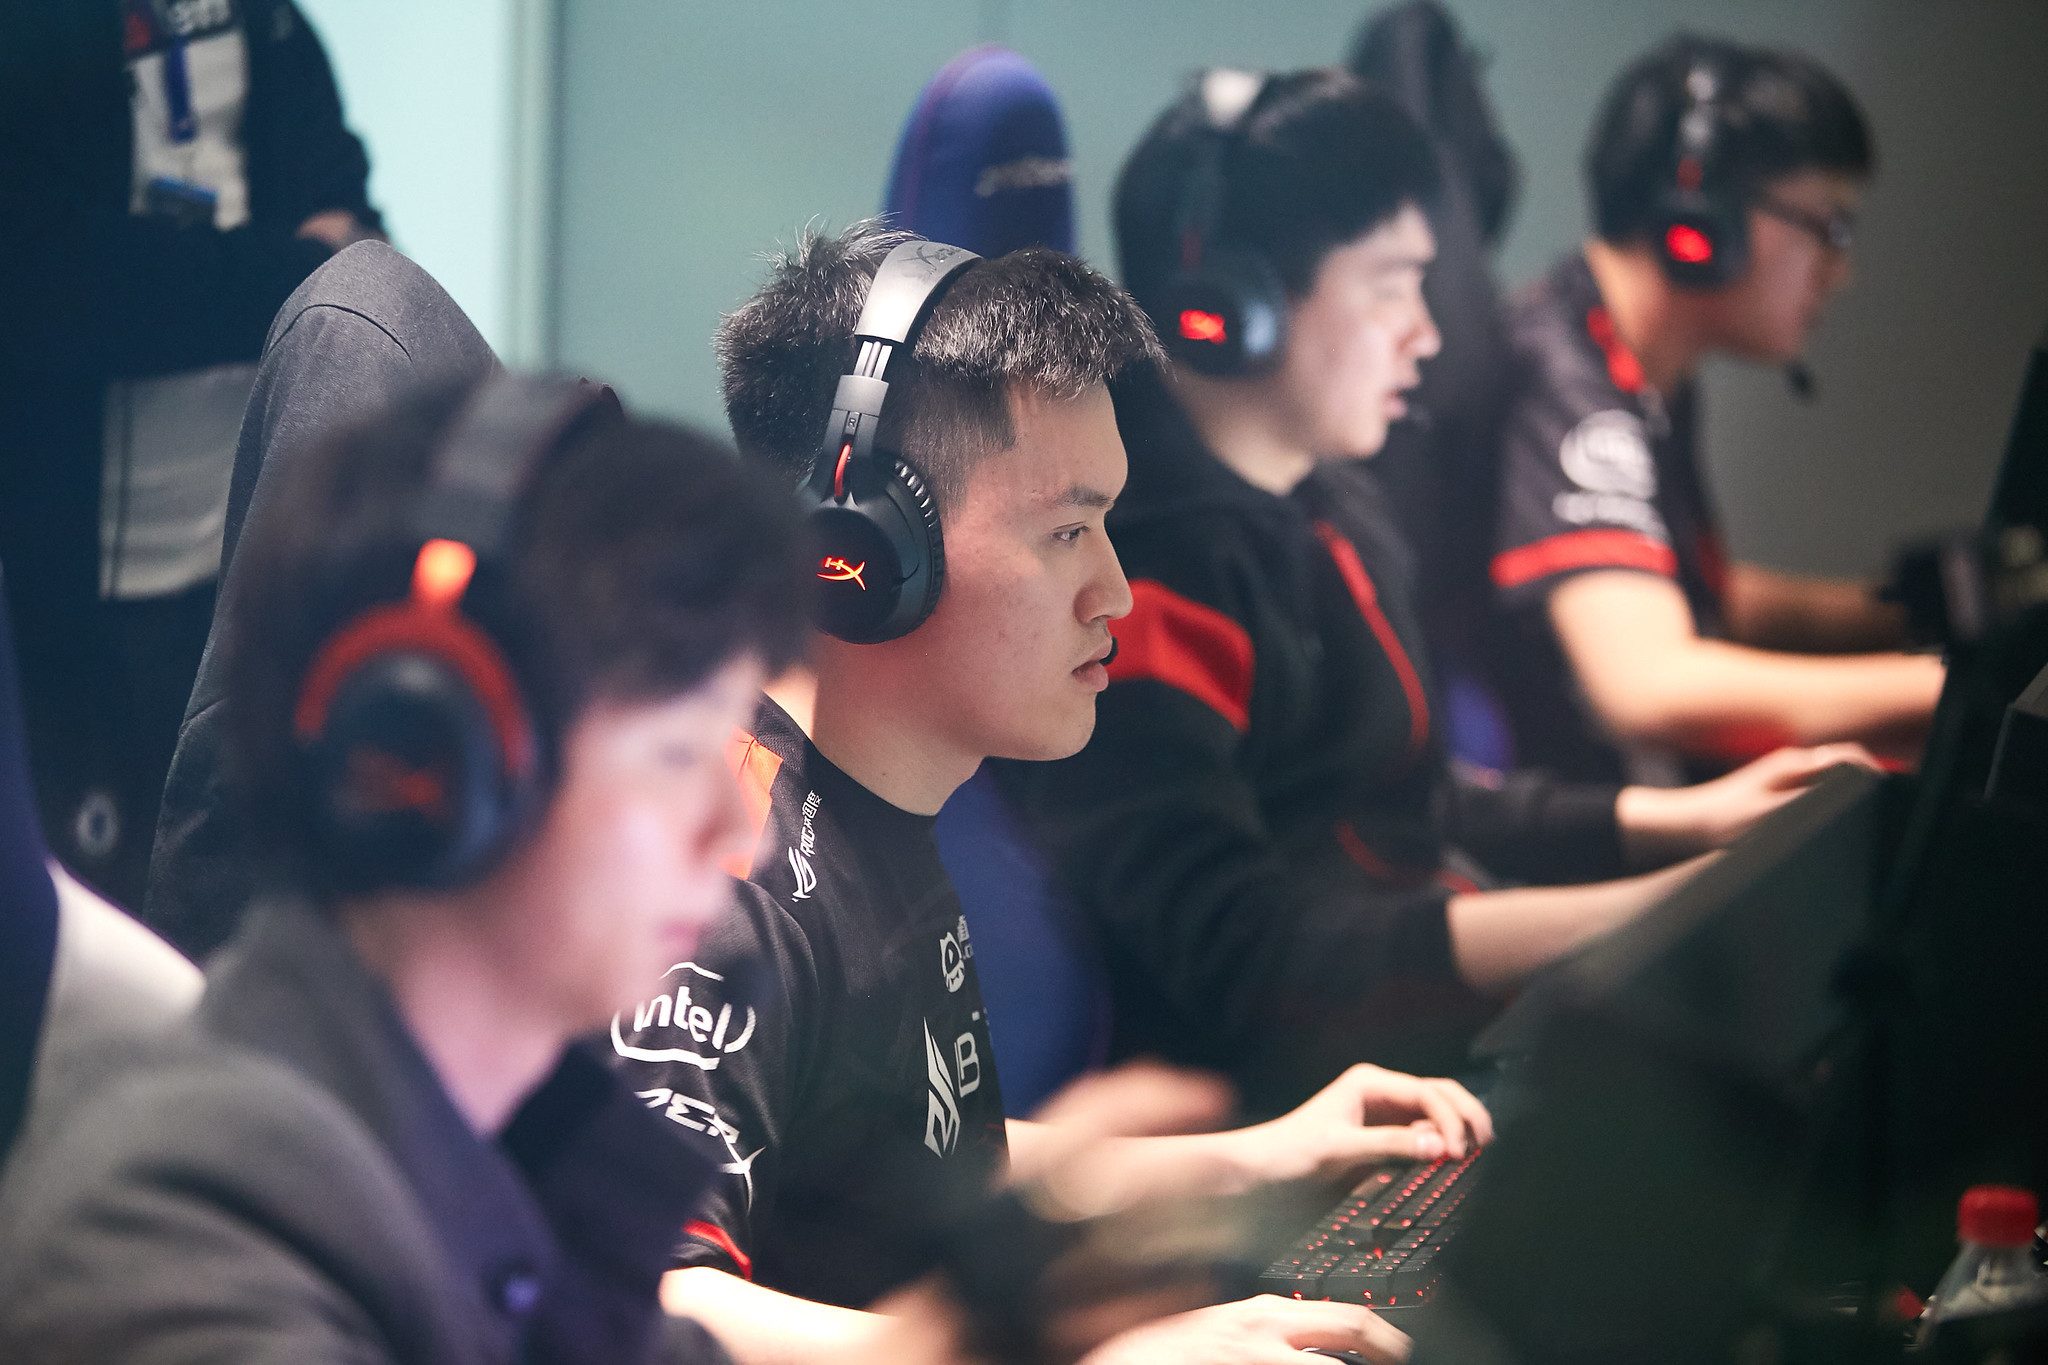 TYLOO join team list for Asia Minor Championship